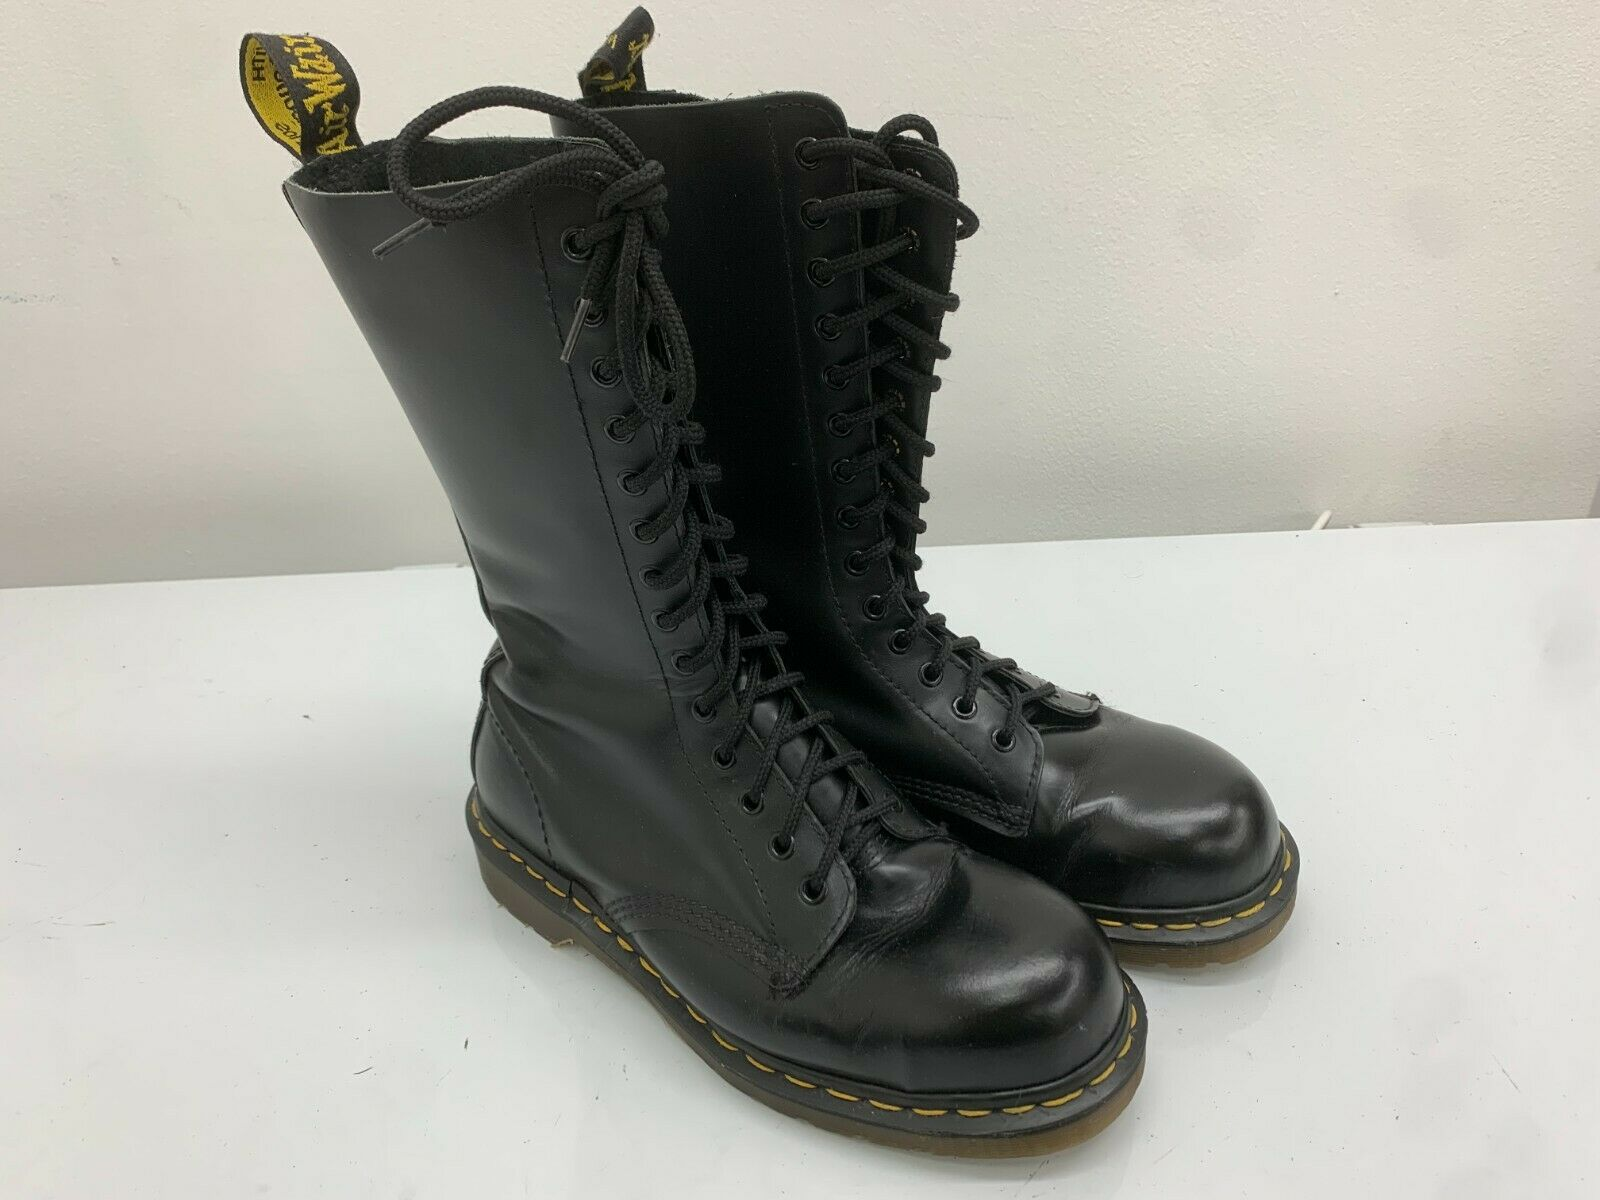 Dr Martens Boots 14 Eyelets Black Leather, Size 7UK, Made In England, Steel Toe